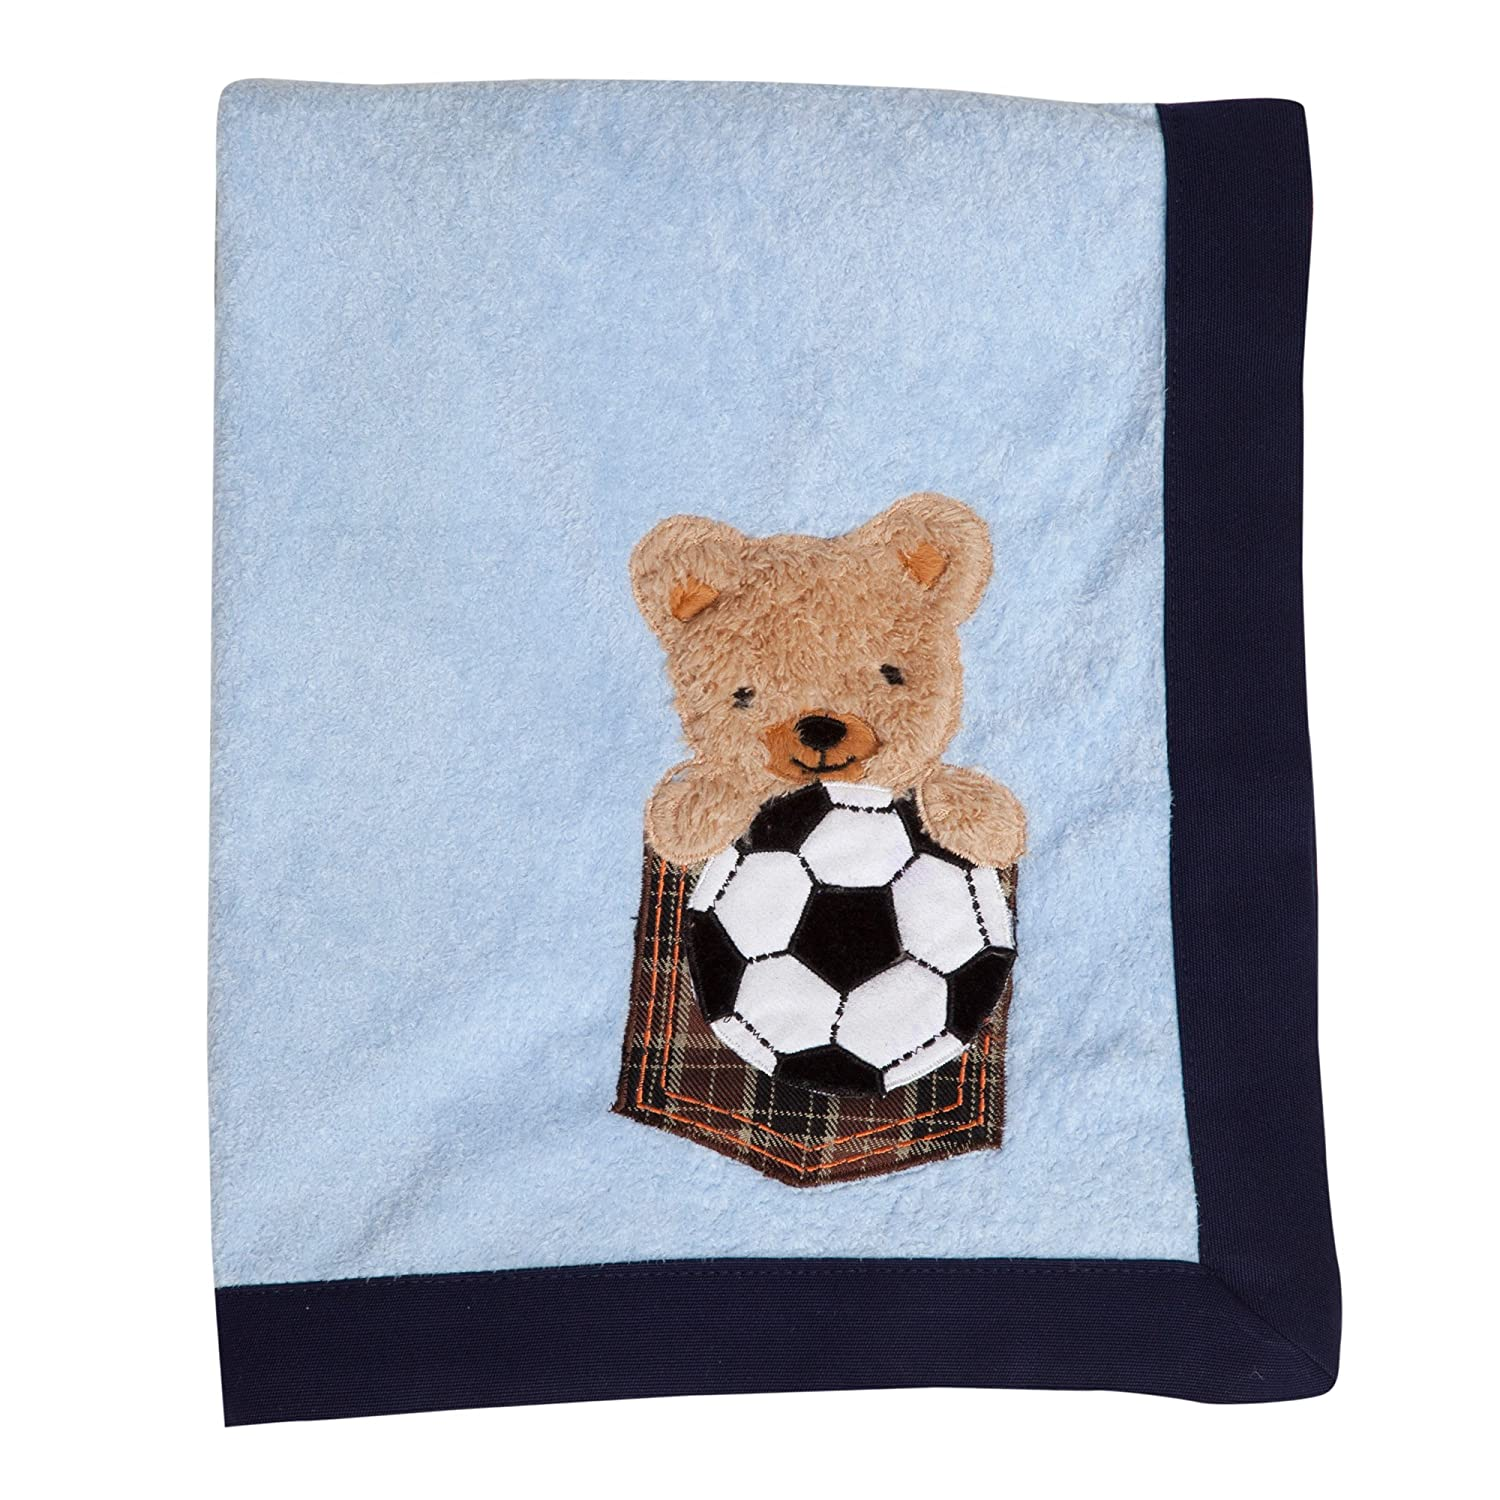 Wee Rascals Baby Bedding Set Baby Bedding And Accessories